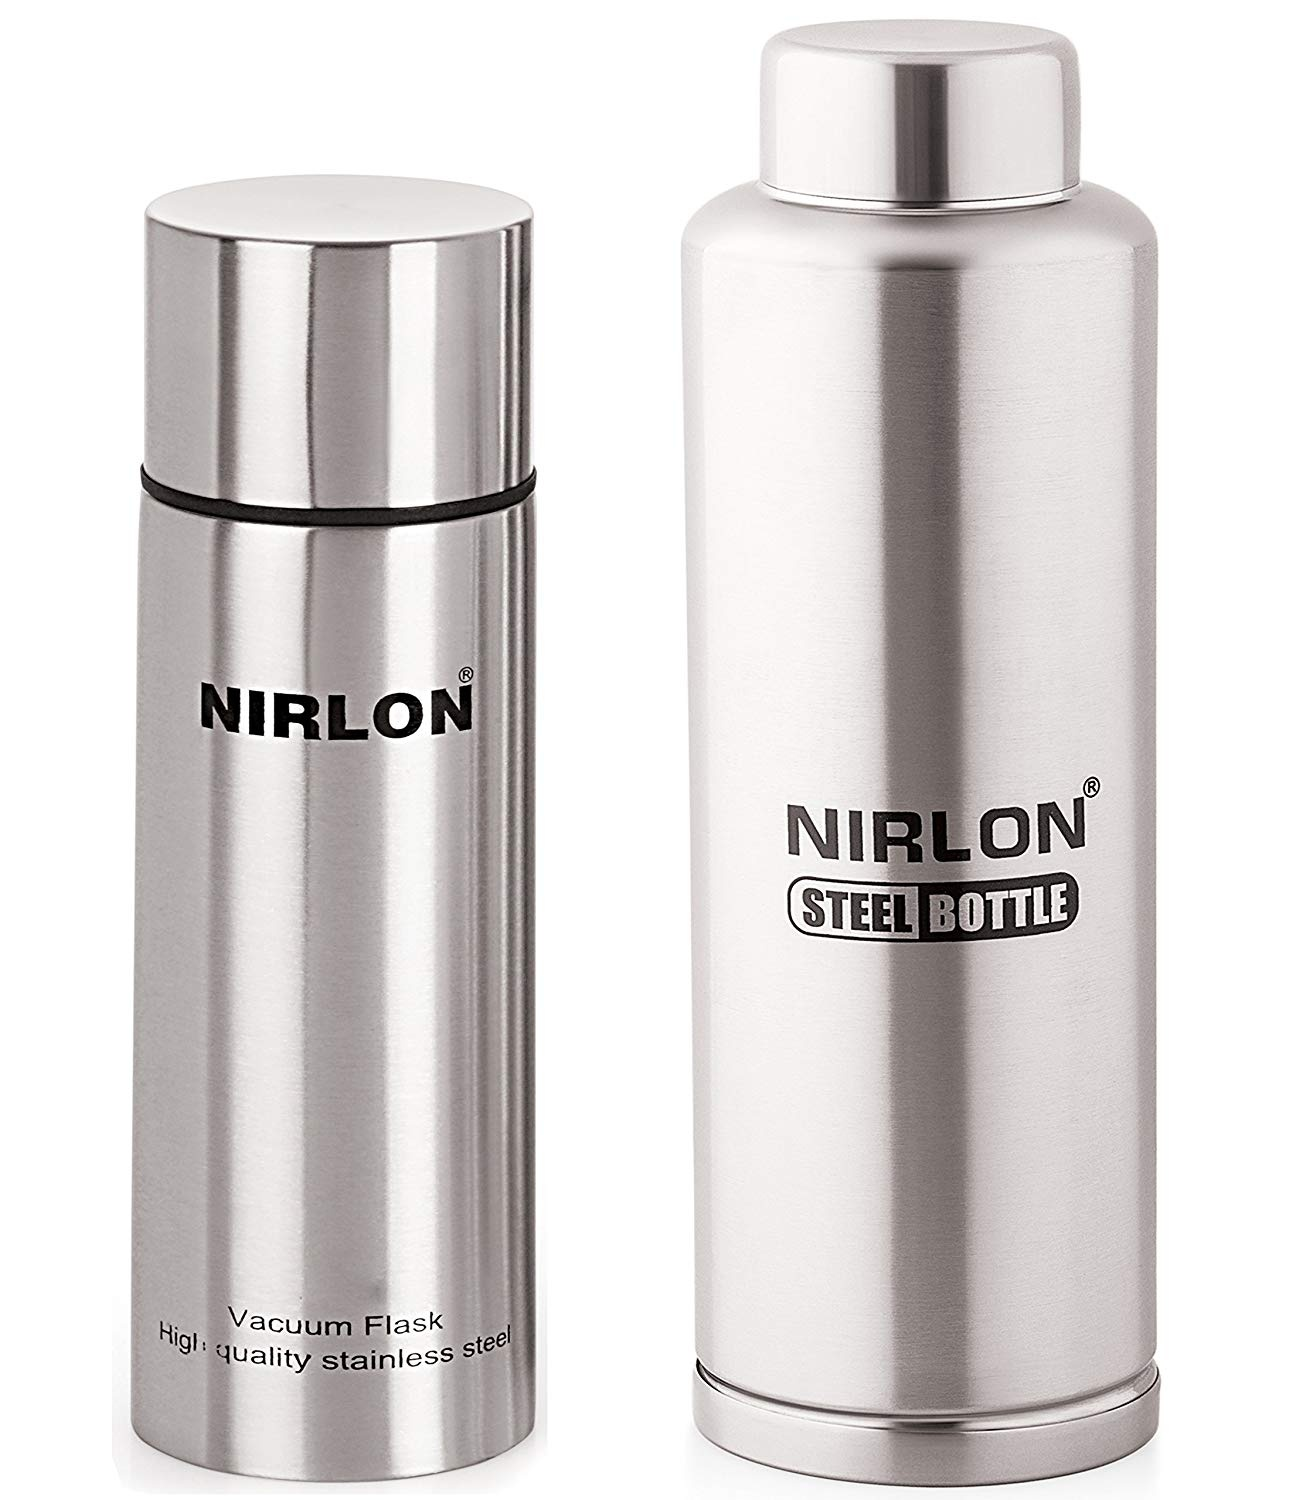 c19b9220a36 High quality Nirlon stainless steel water bottle - whether you are outside  playing a sport